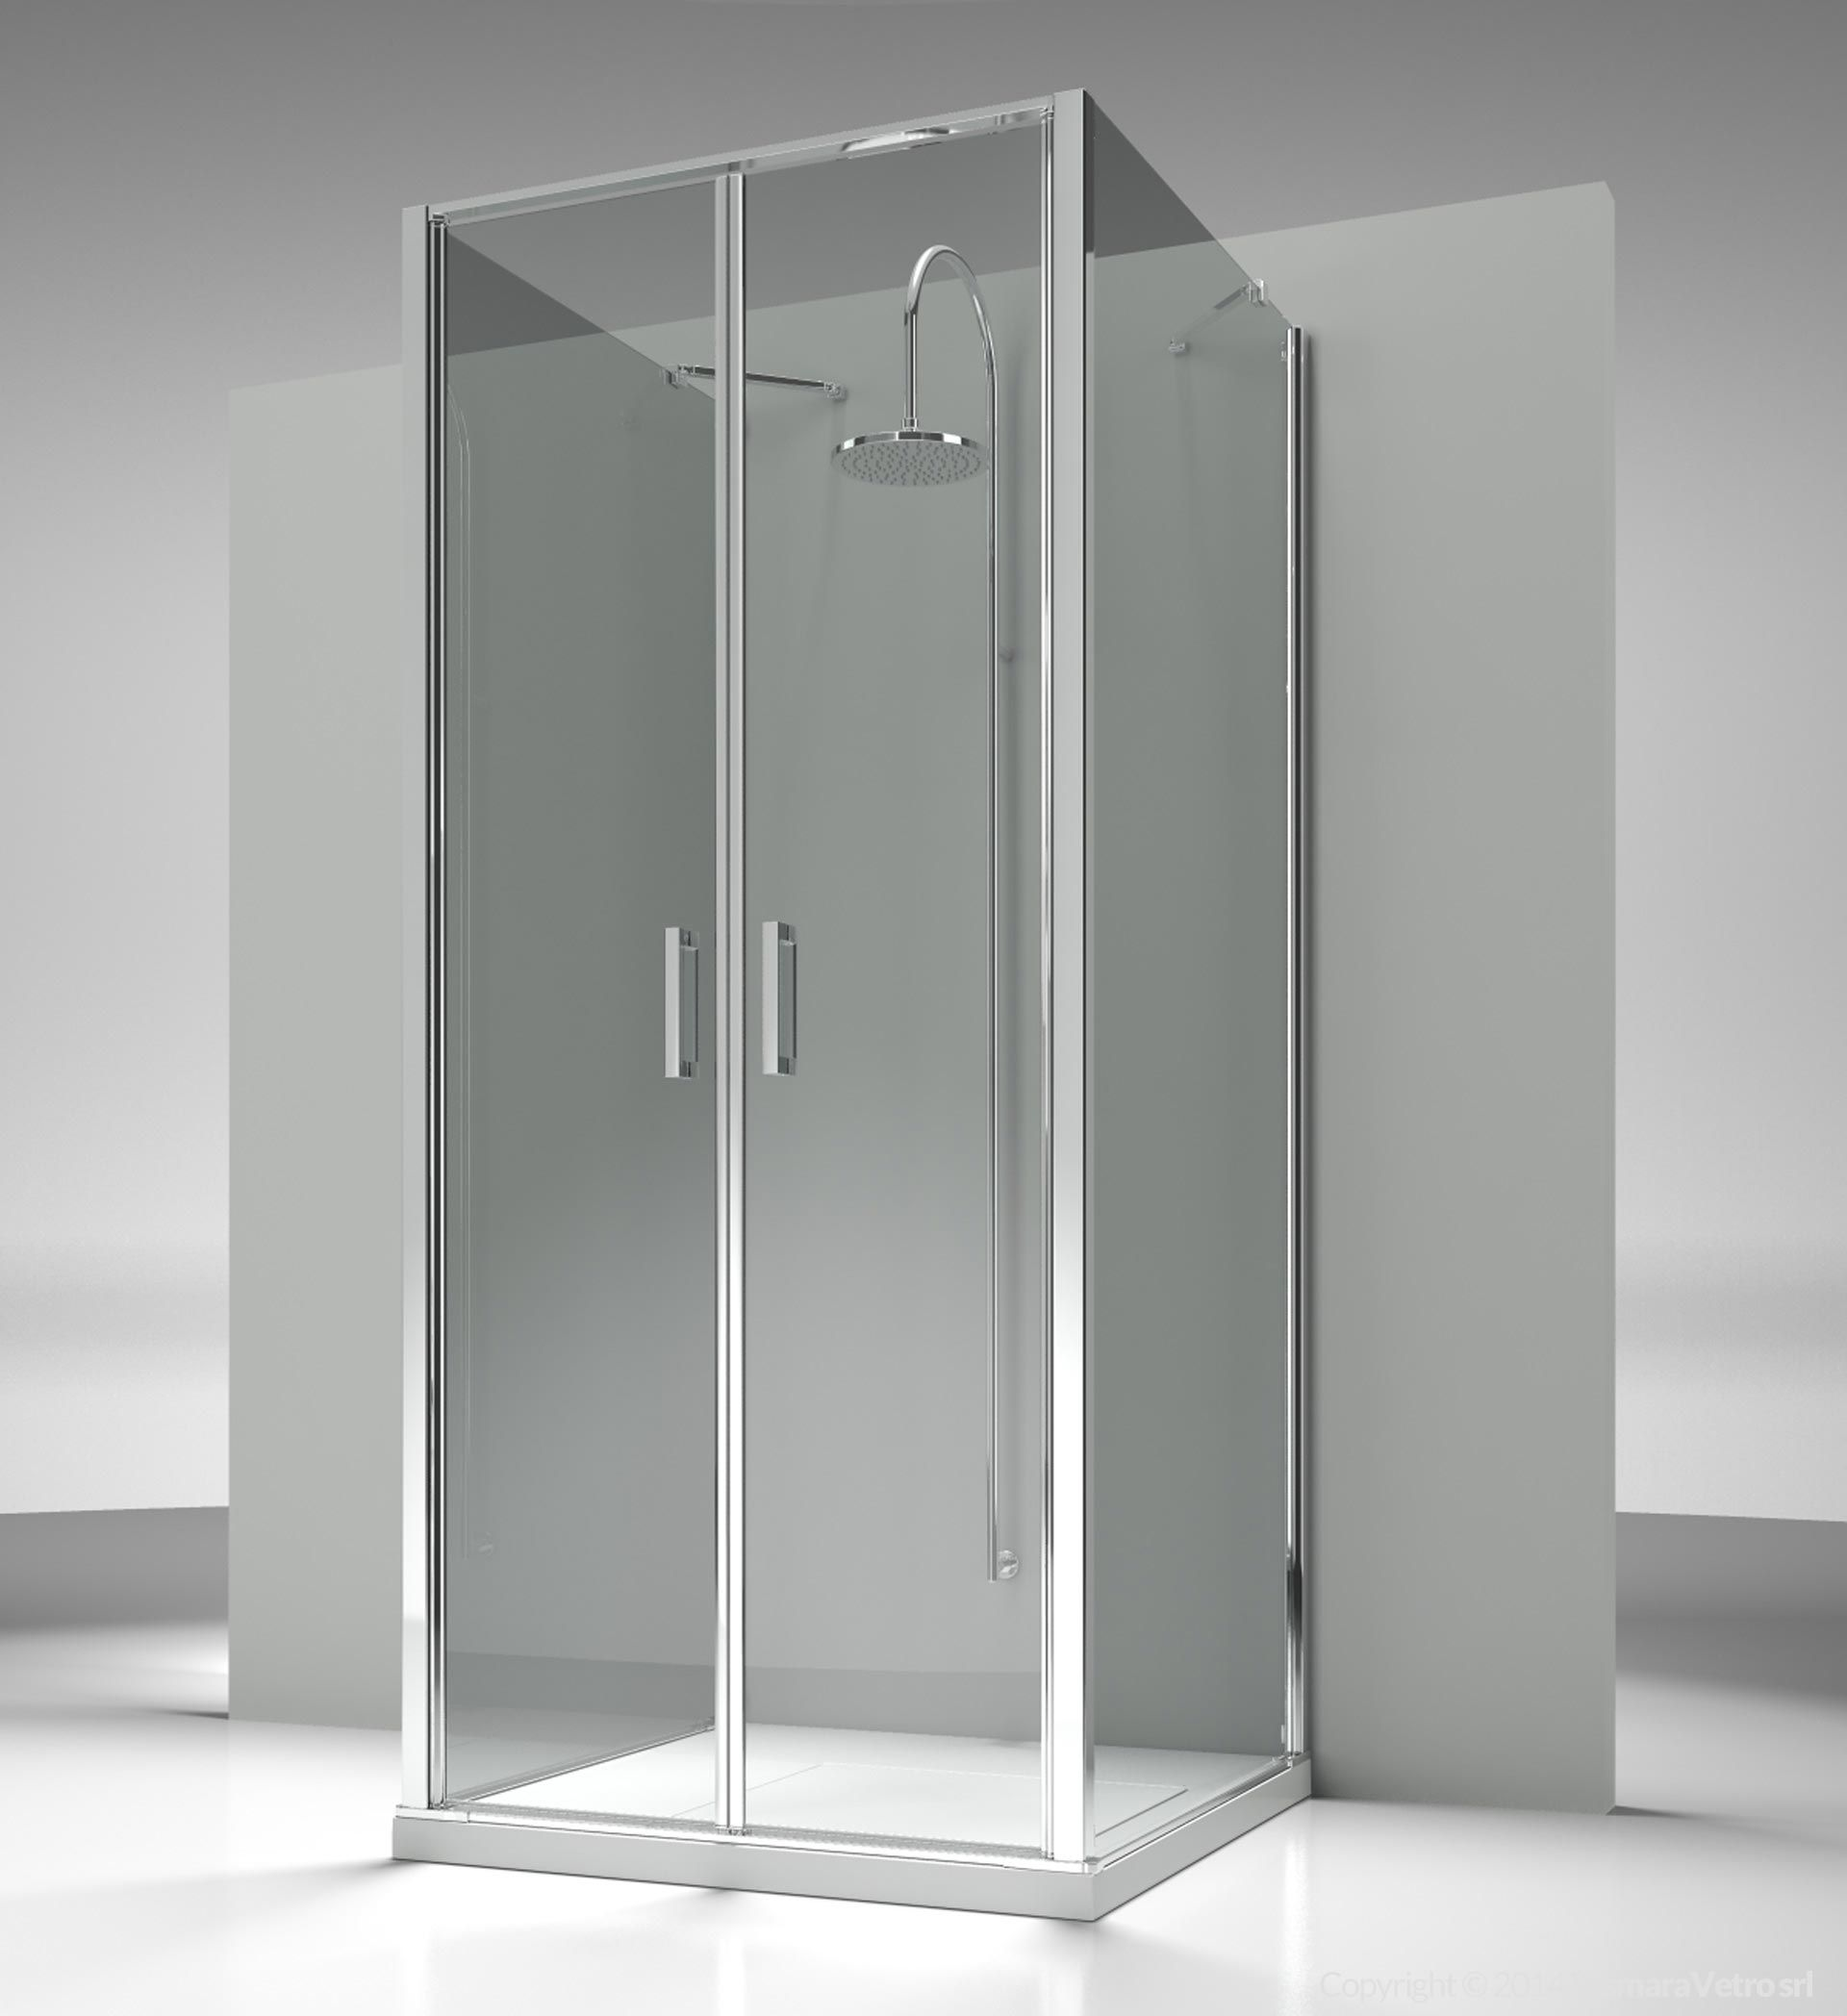 Shower enclosure at wall made by an opening side LB with